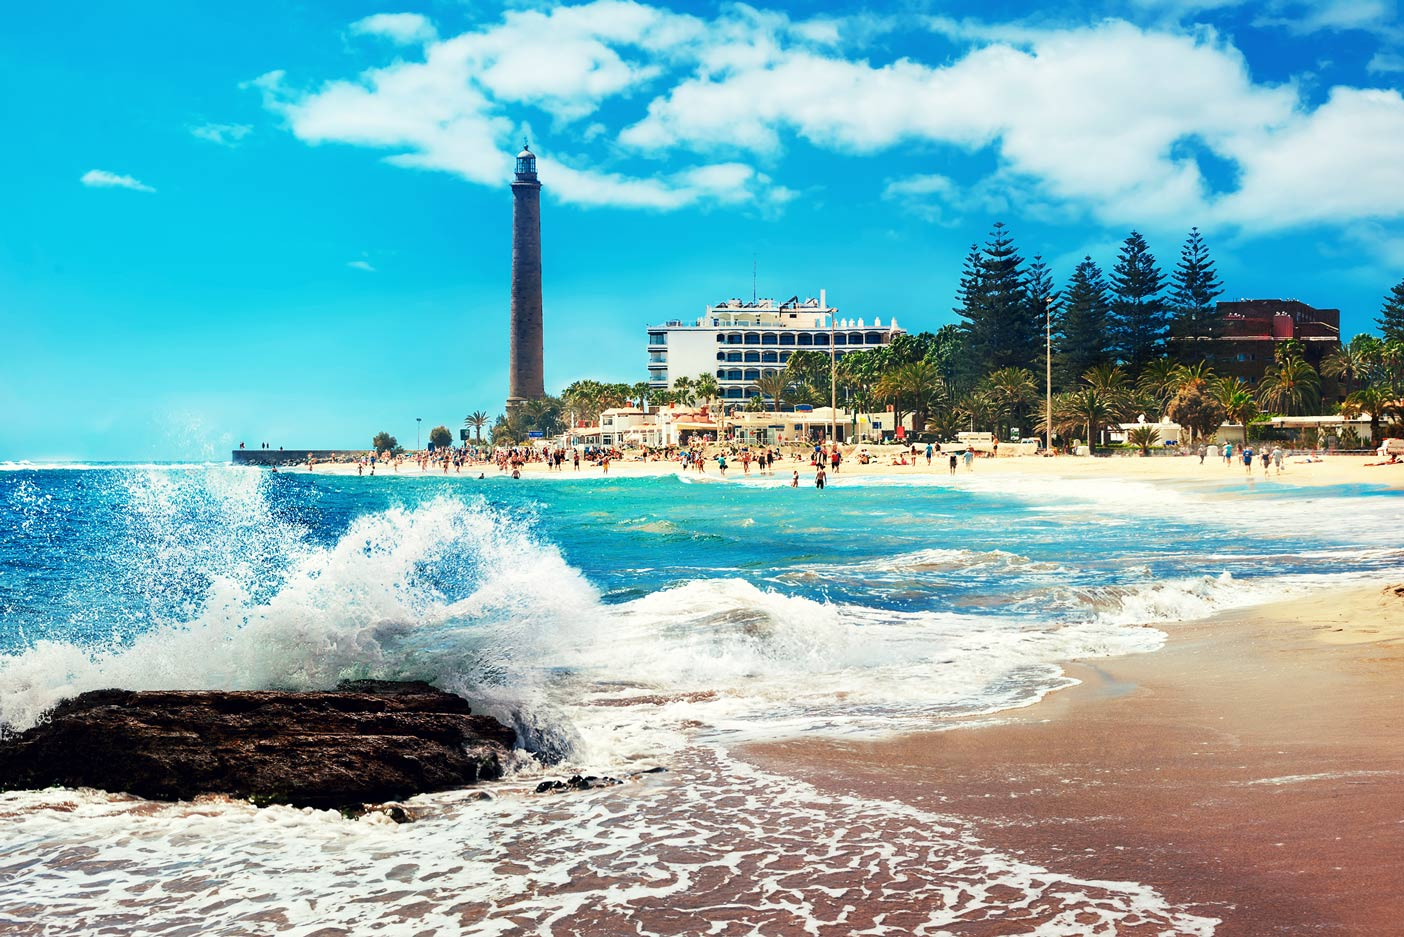 mejores playas espana Maspalomas - The best beaches in Spain to visit during the summer